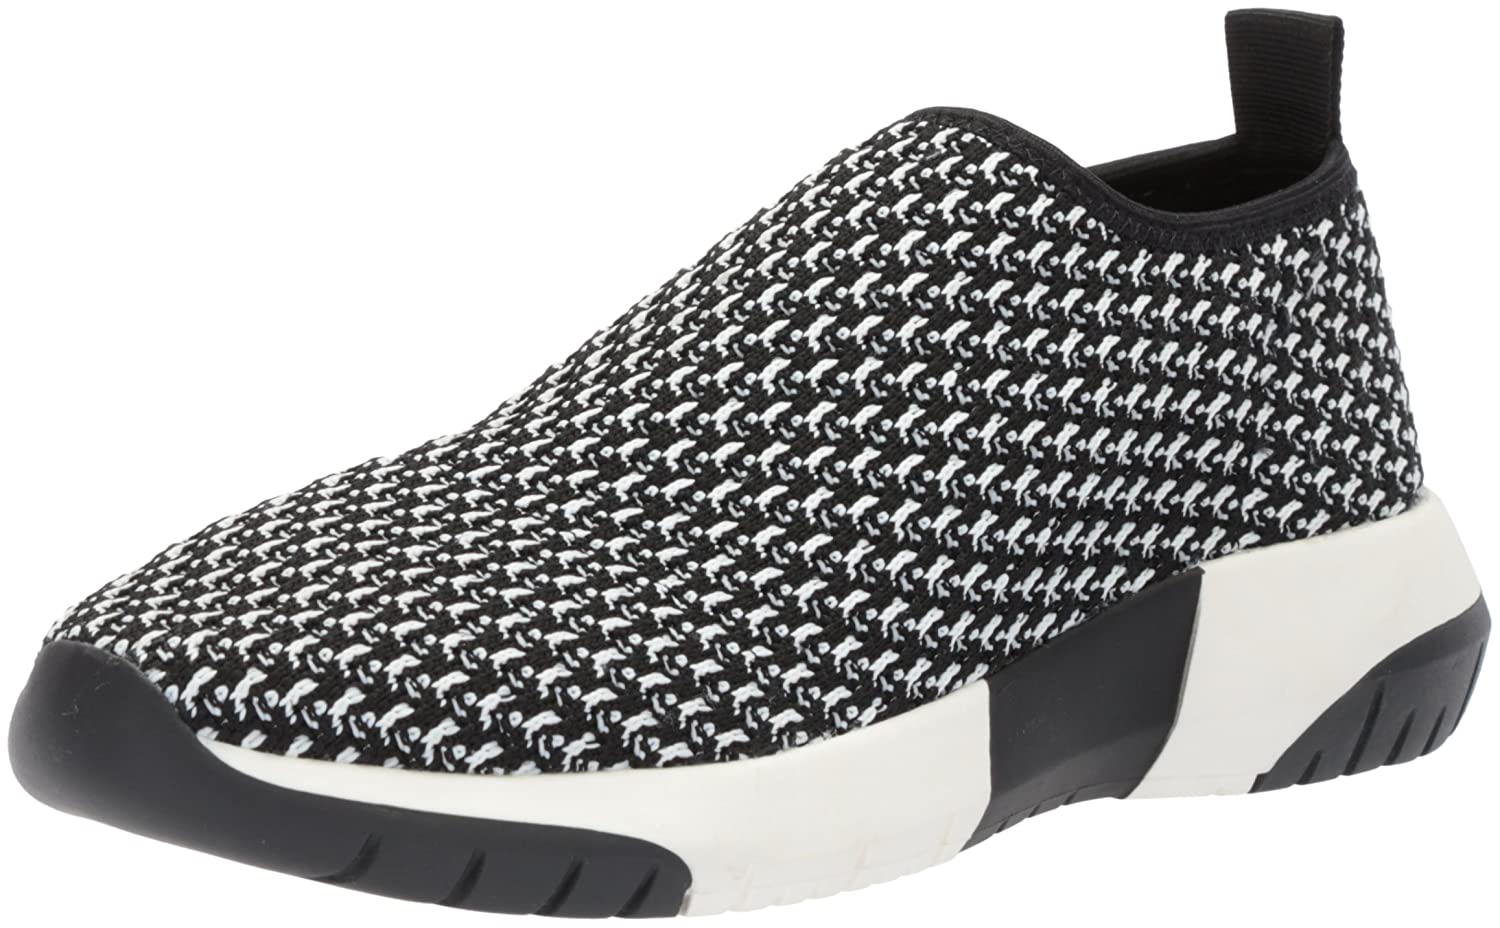 6c02ab974ee09 The Fix Women's Laylah Slip-on Jogger Sneaker